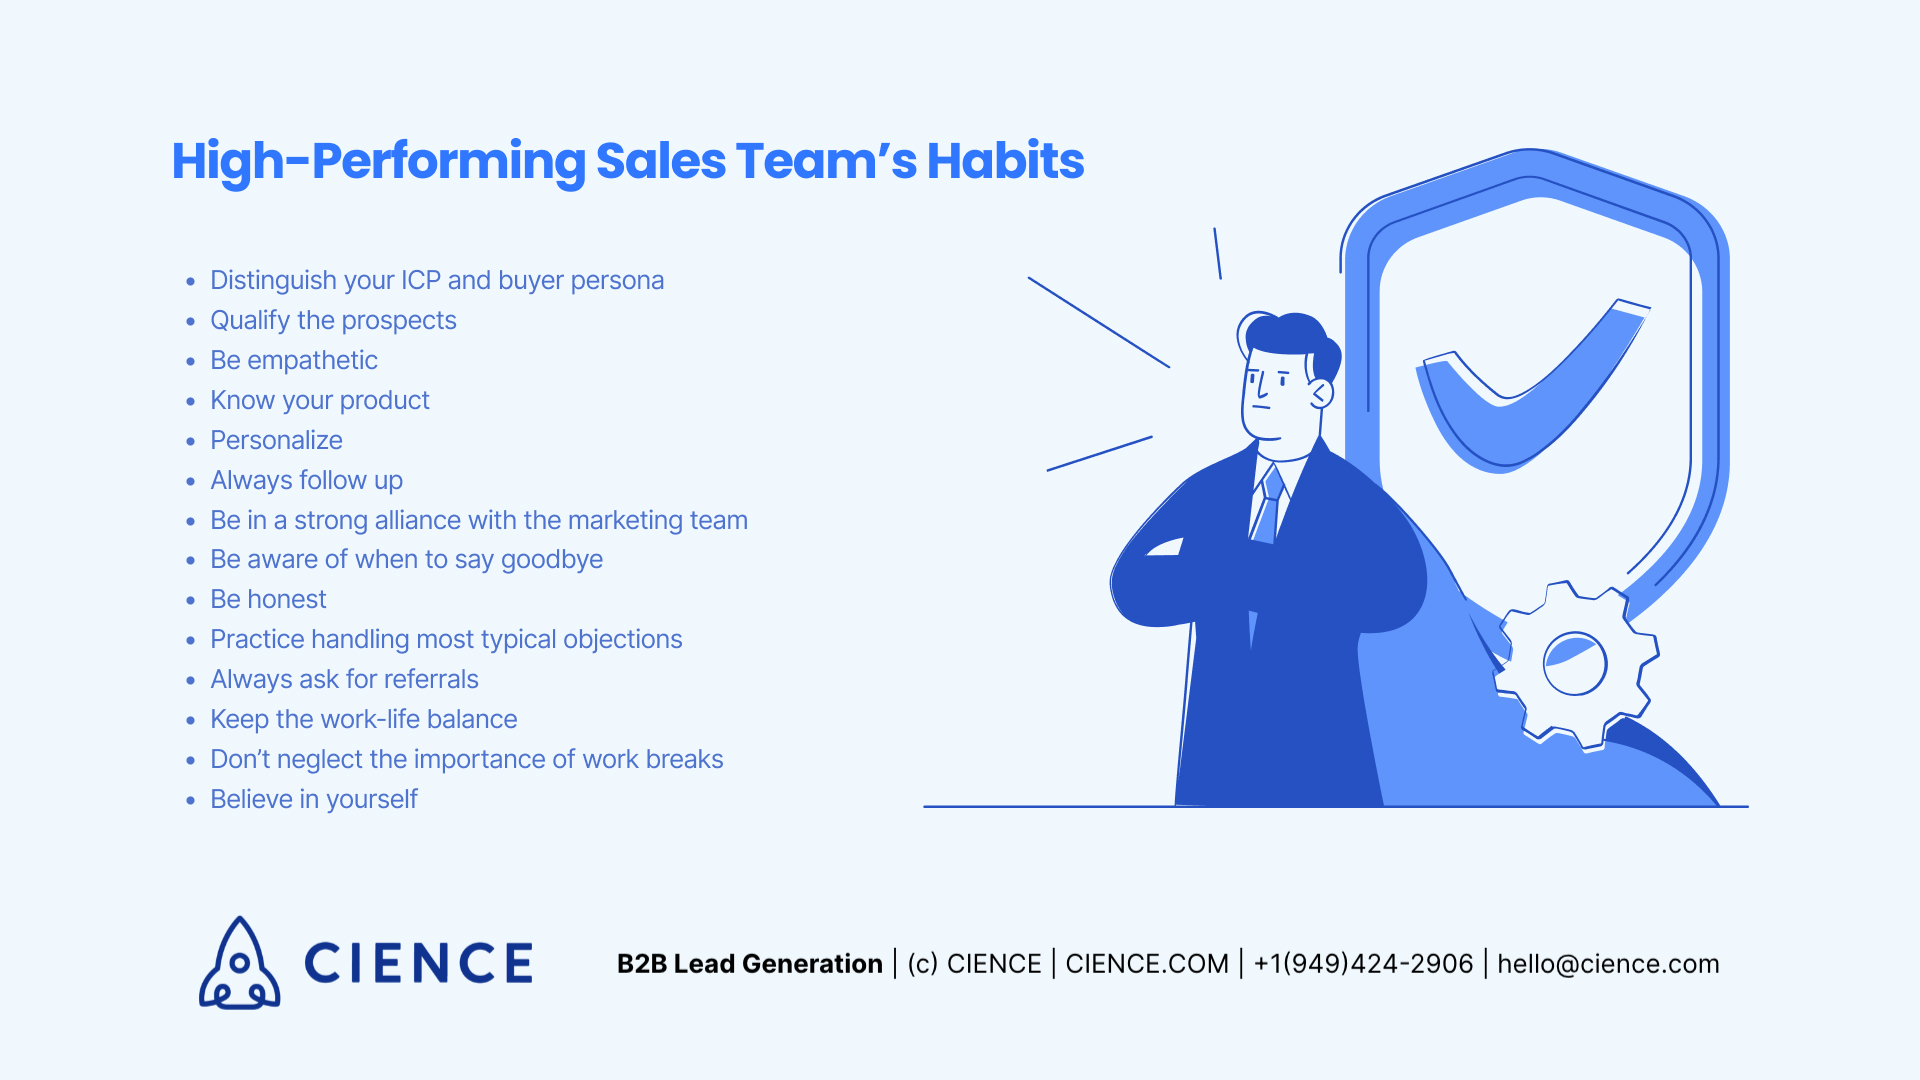 Habits of High-Performing Sales Team